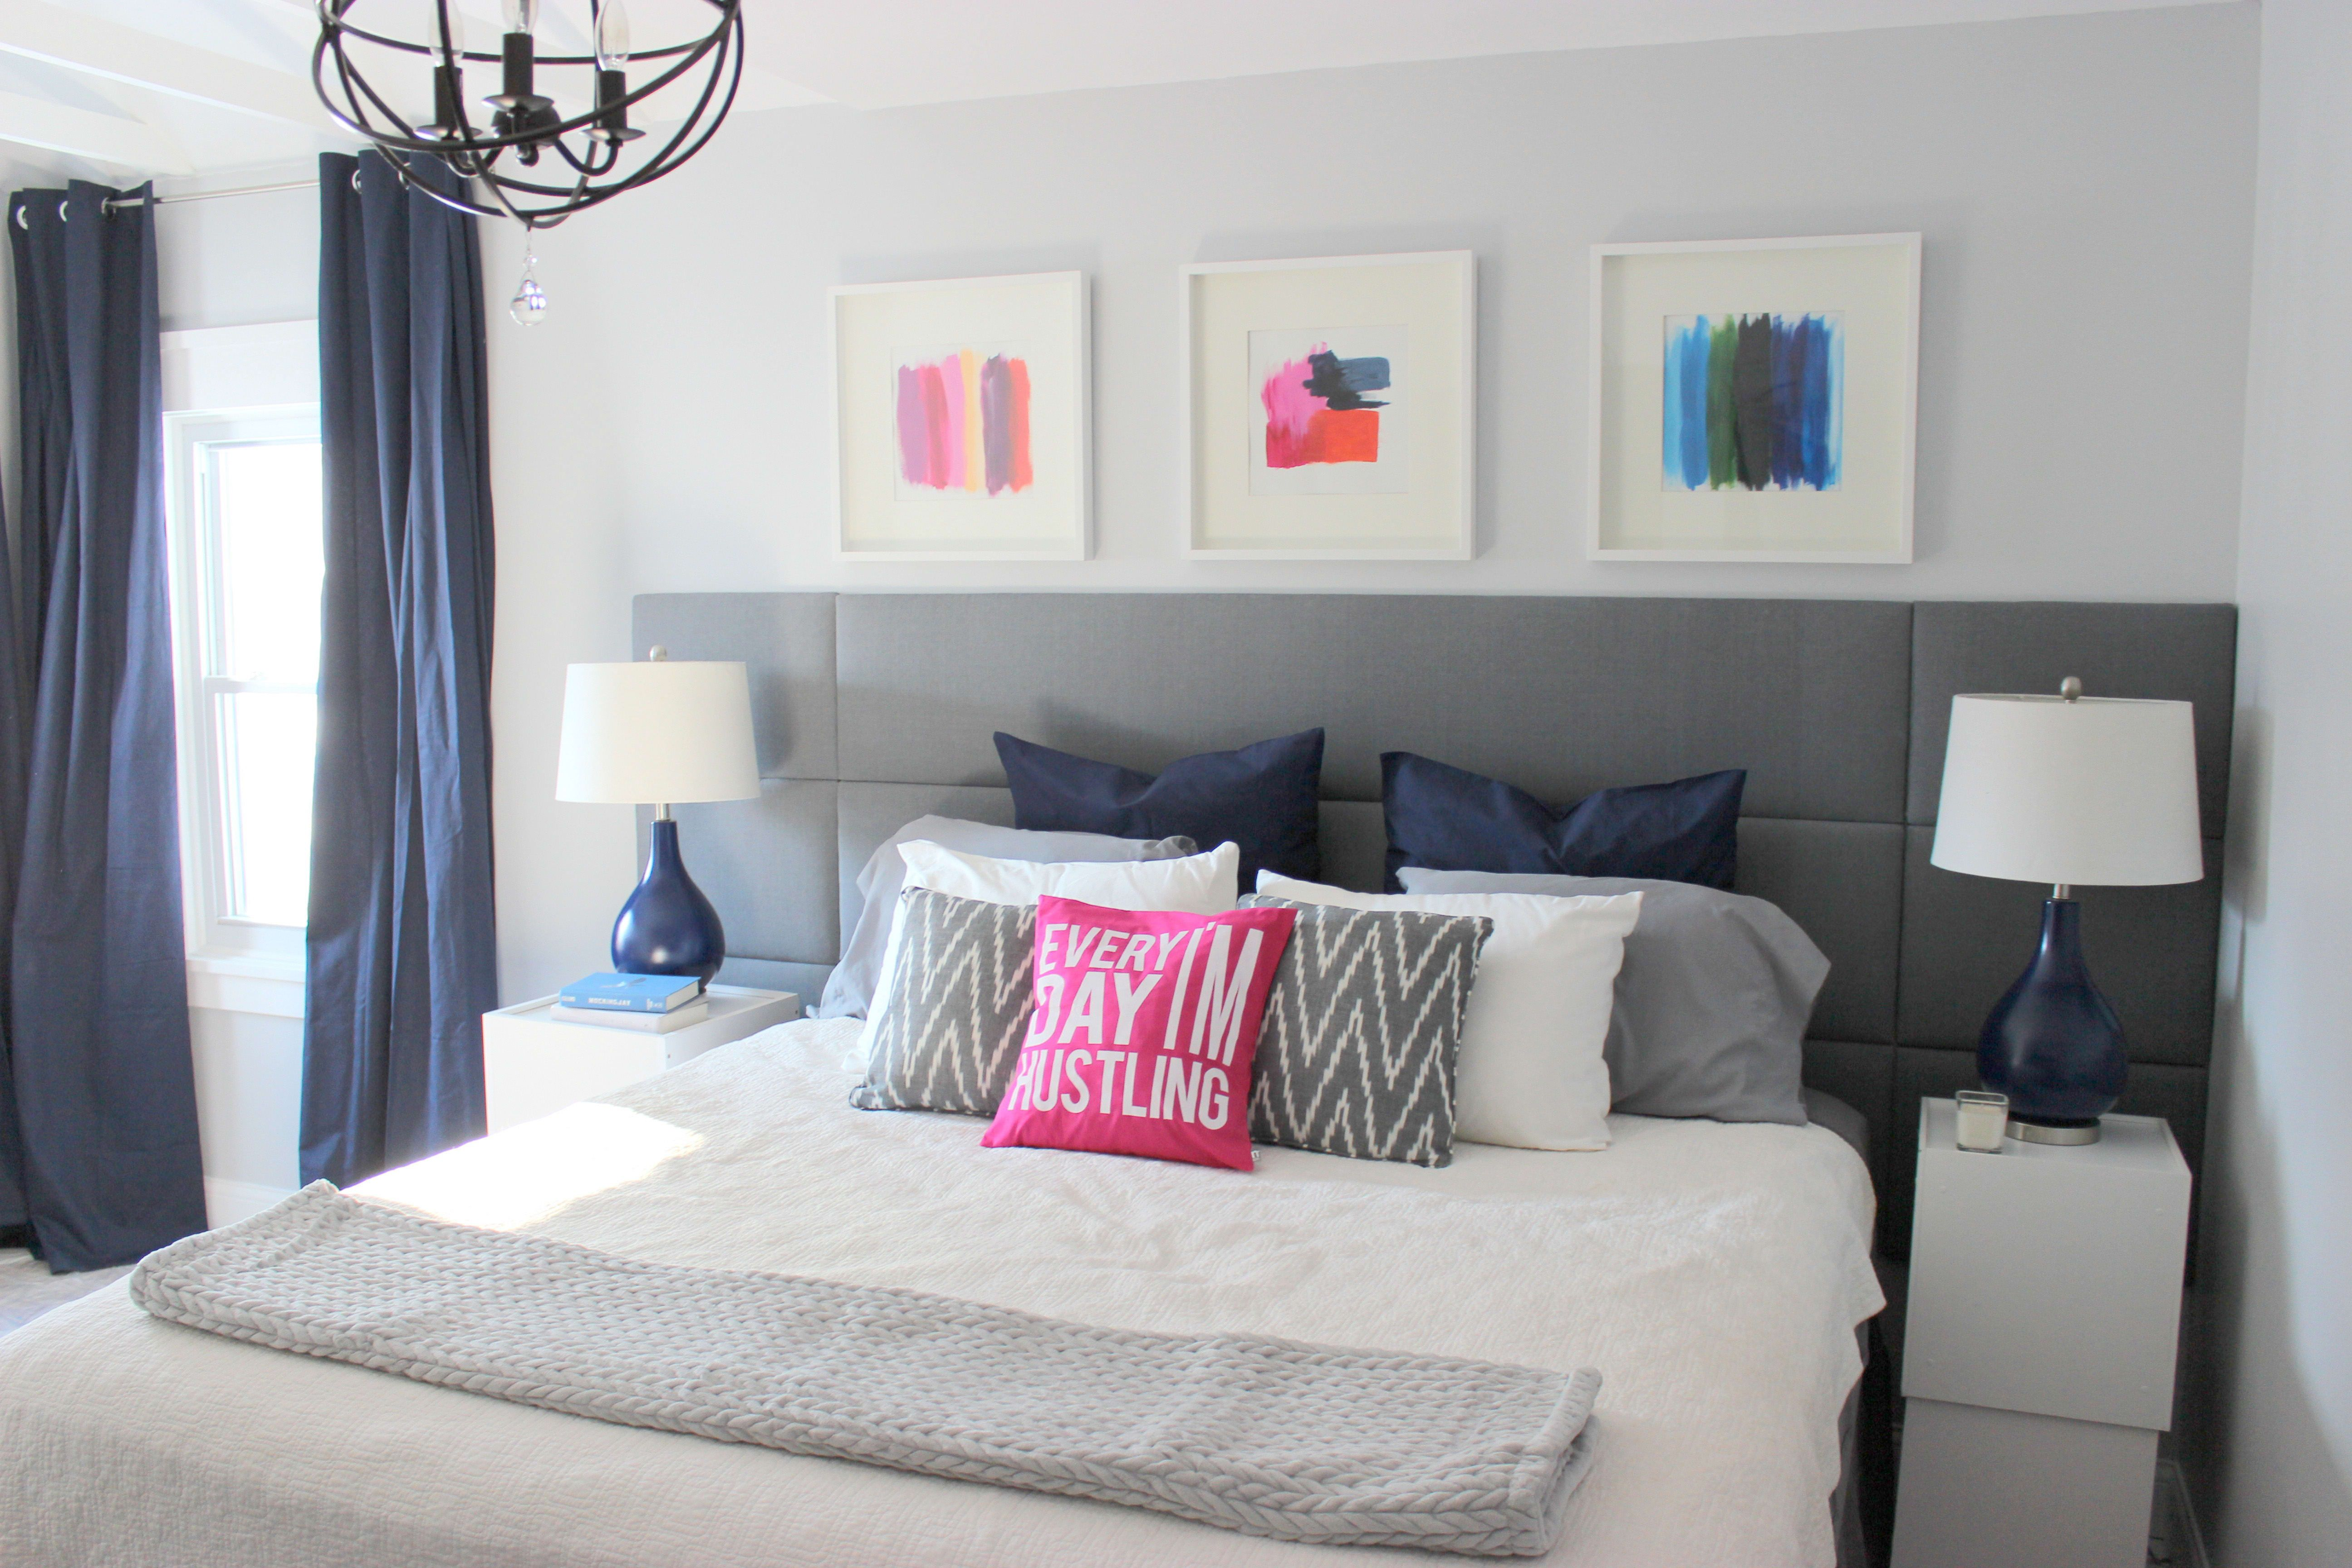 Design Bedroom Games Adorable 12 Headboards That Are Total Bedroom Gamechangers Gamechanging Inspiration Design